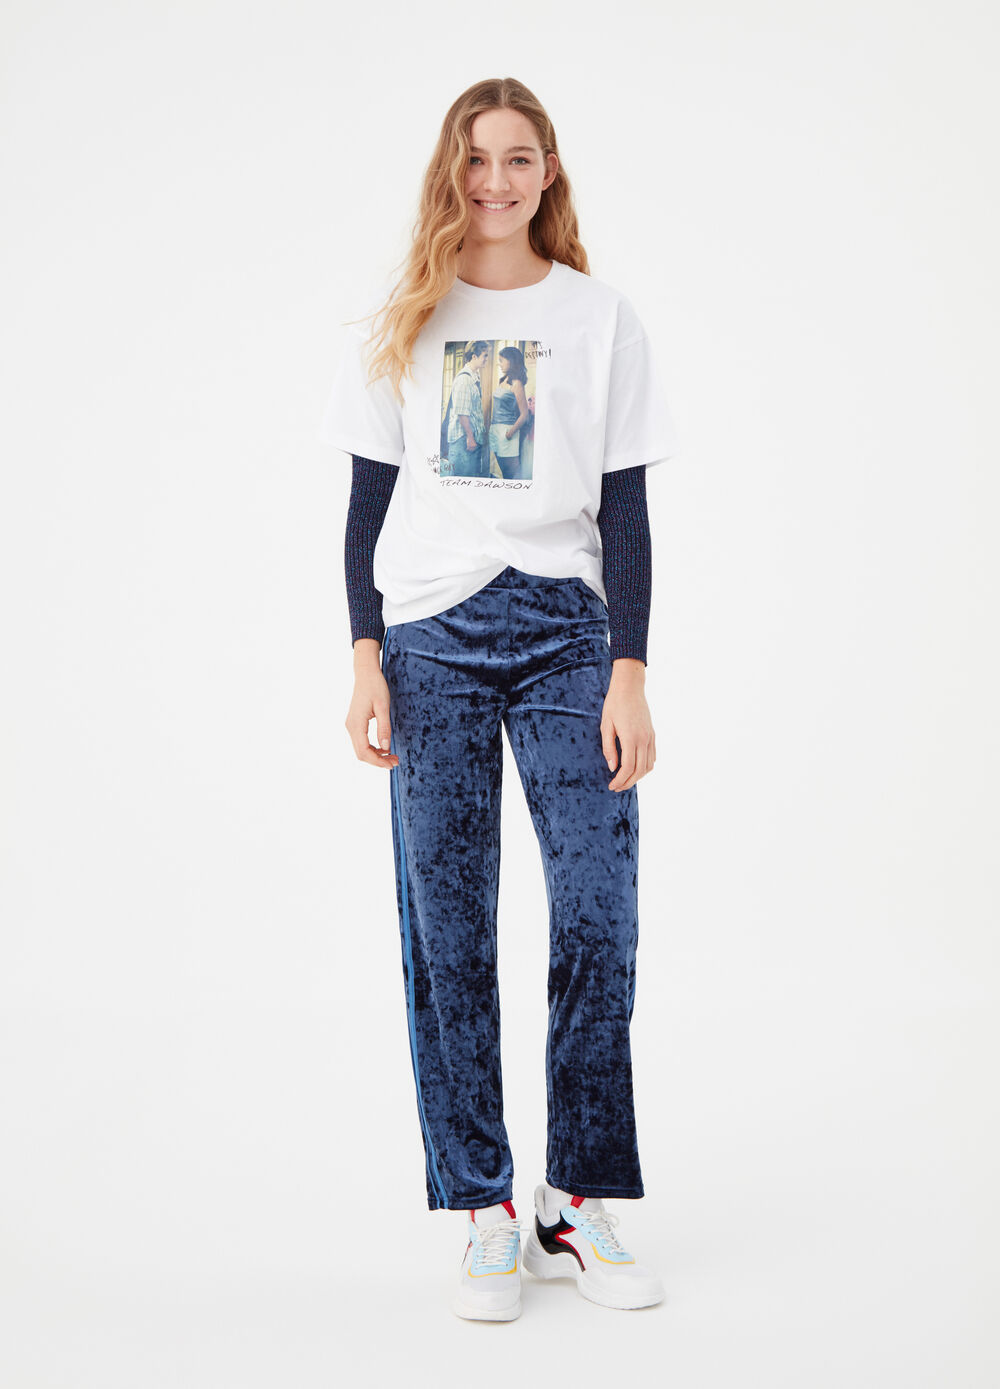 Oversized T-shirt with Dawson's Creek print